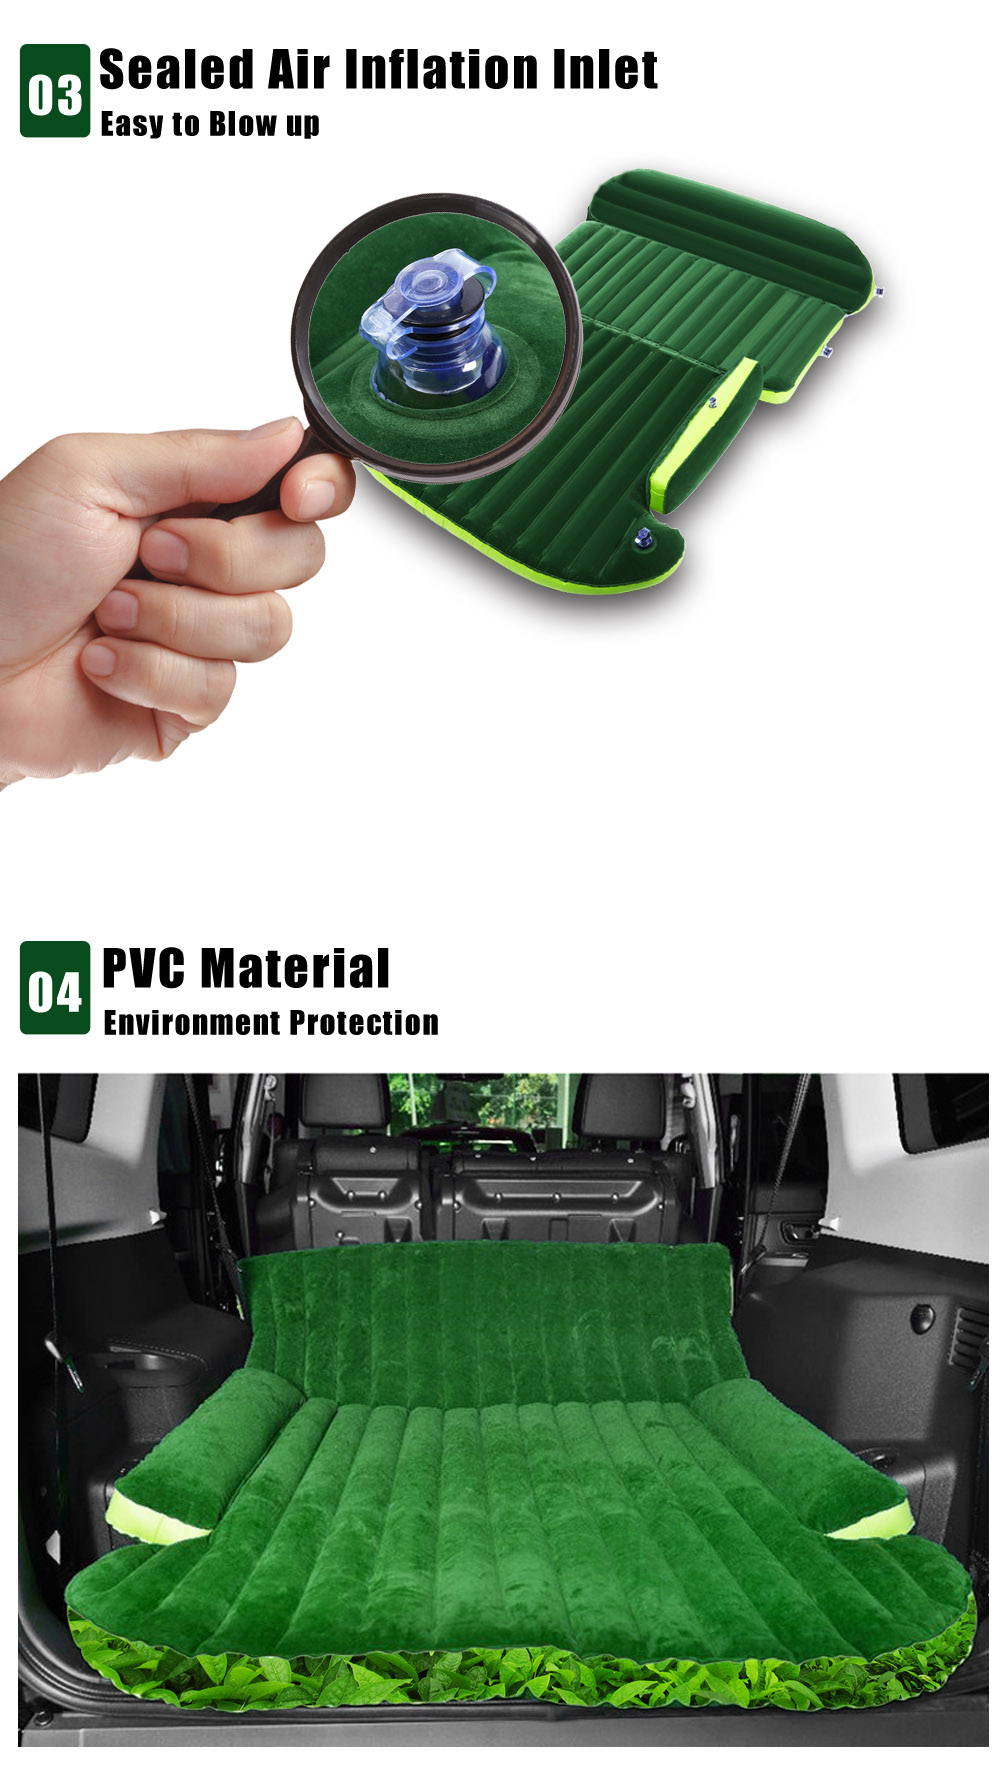 Drive Travel Universal Automotive Air Inflation Bed Wave Design Environmental Material Comfortable Airbed for SUV